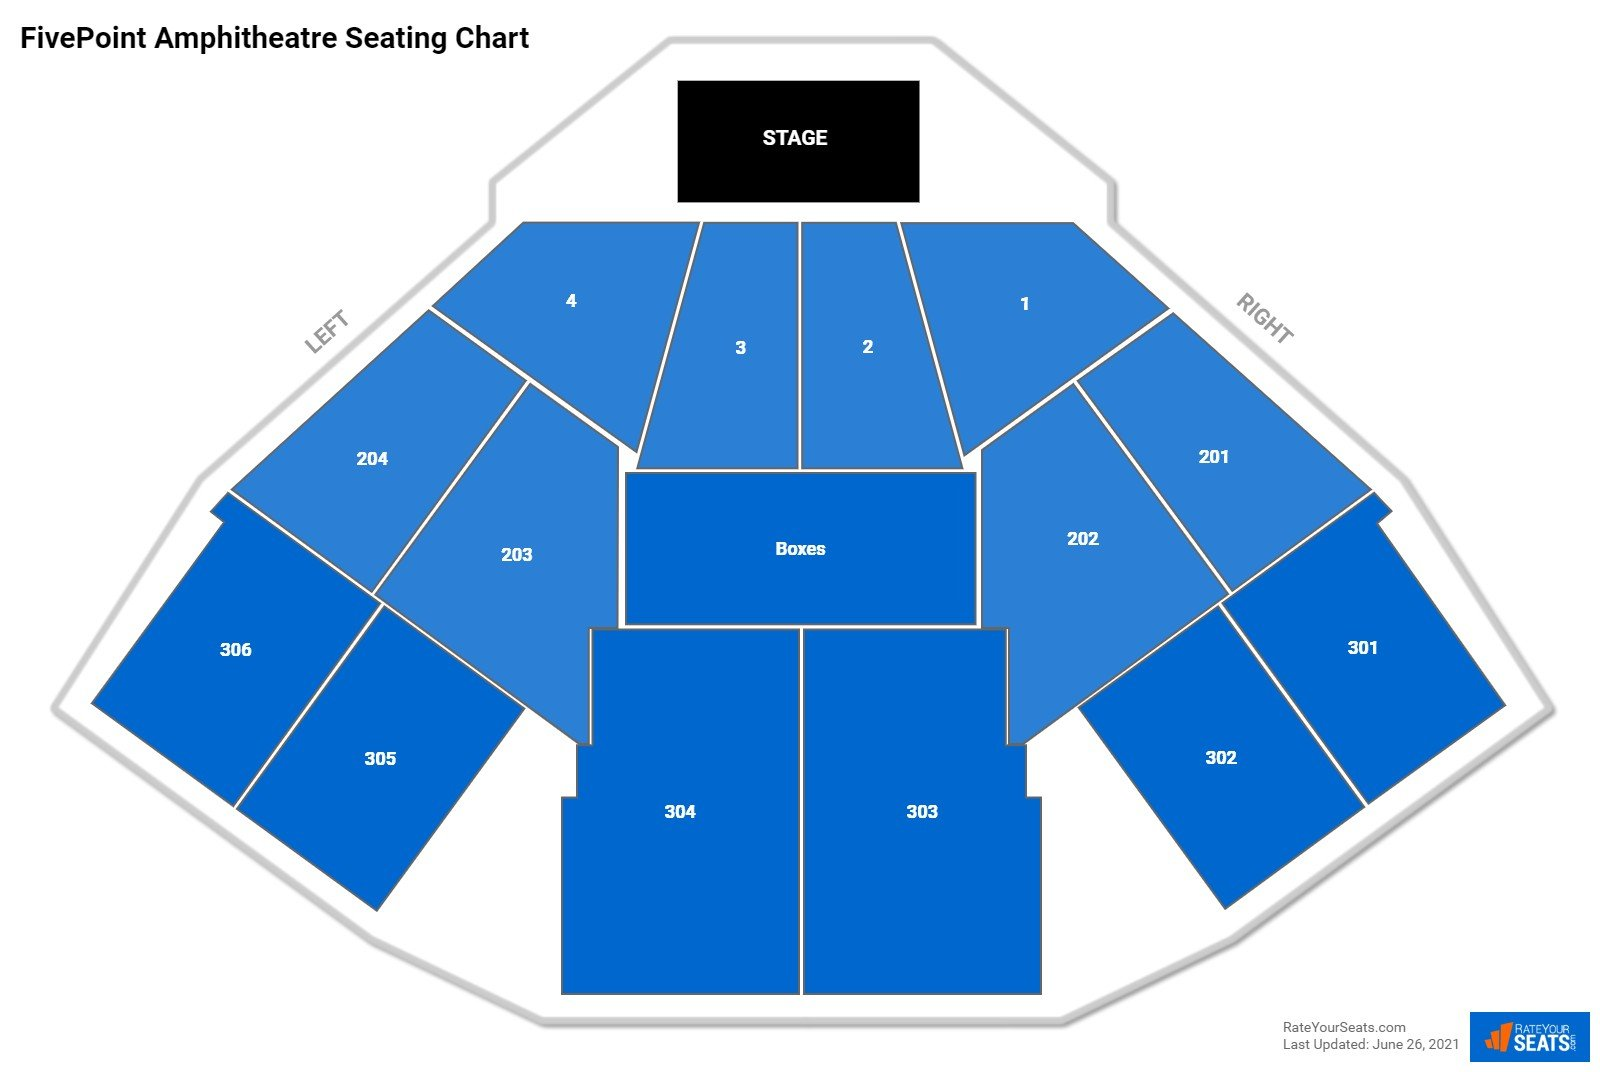 FivePoint Amphitheatre Seating Chart